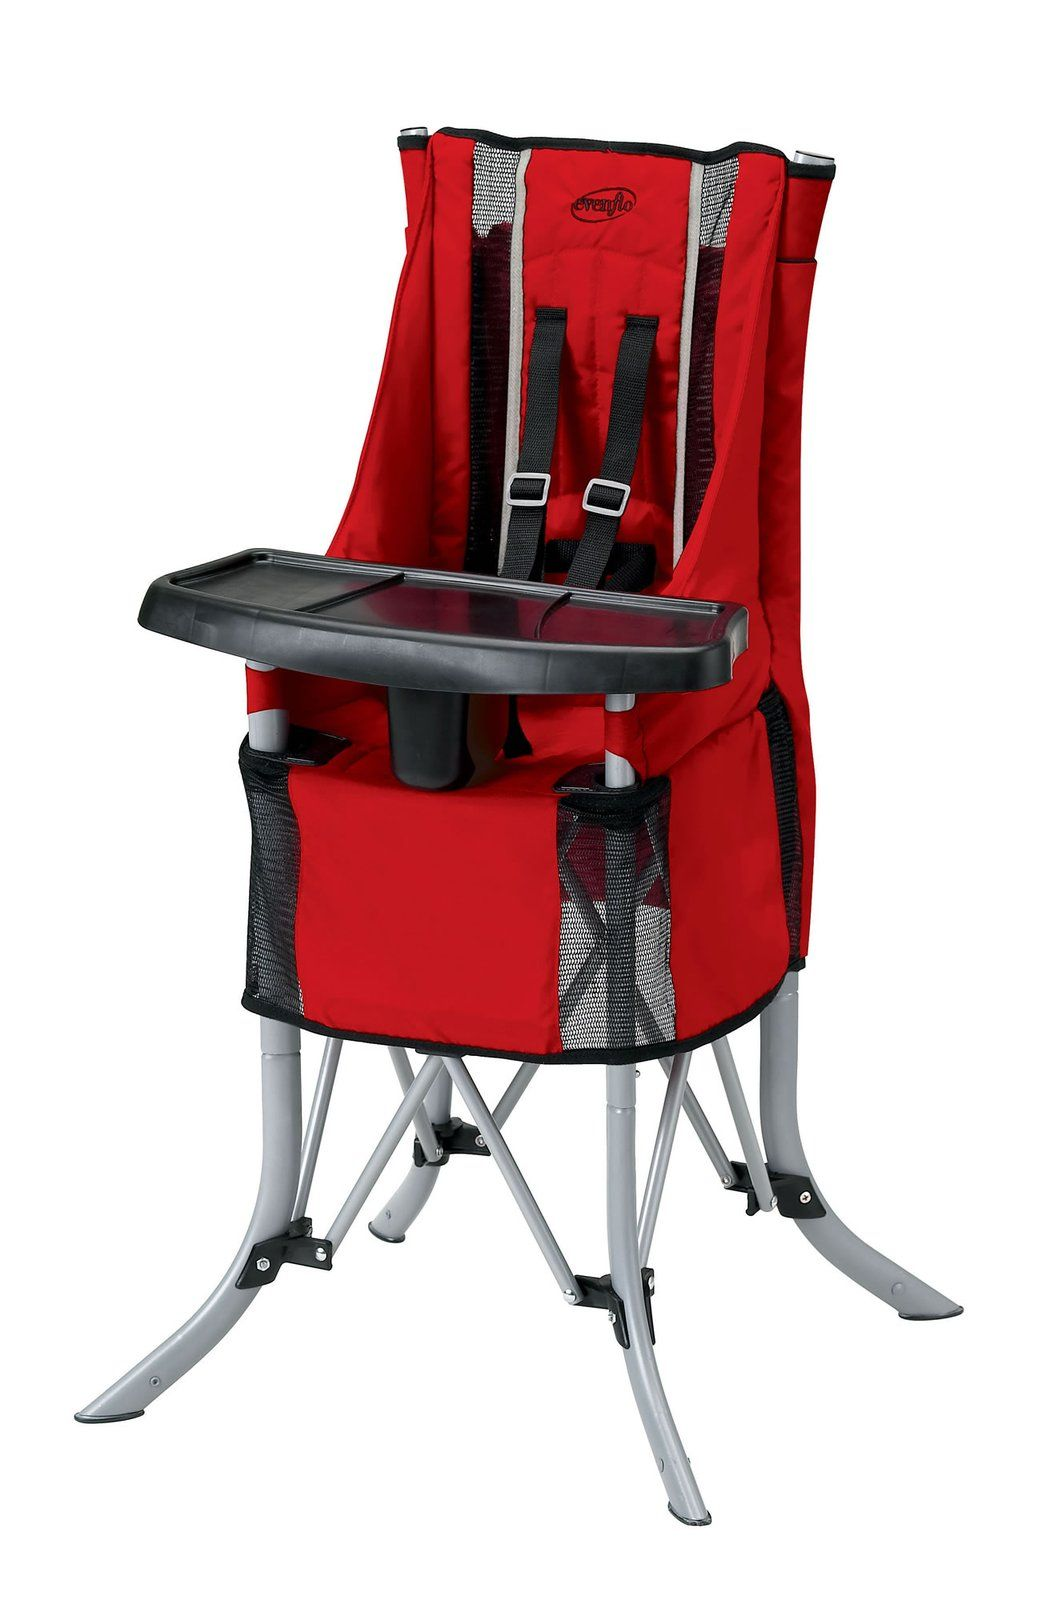 Evenflo High Chair Cover Covers Jysk Babygo Travel Red Best Price